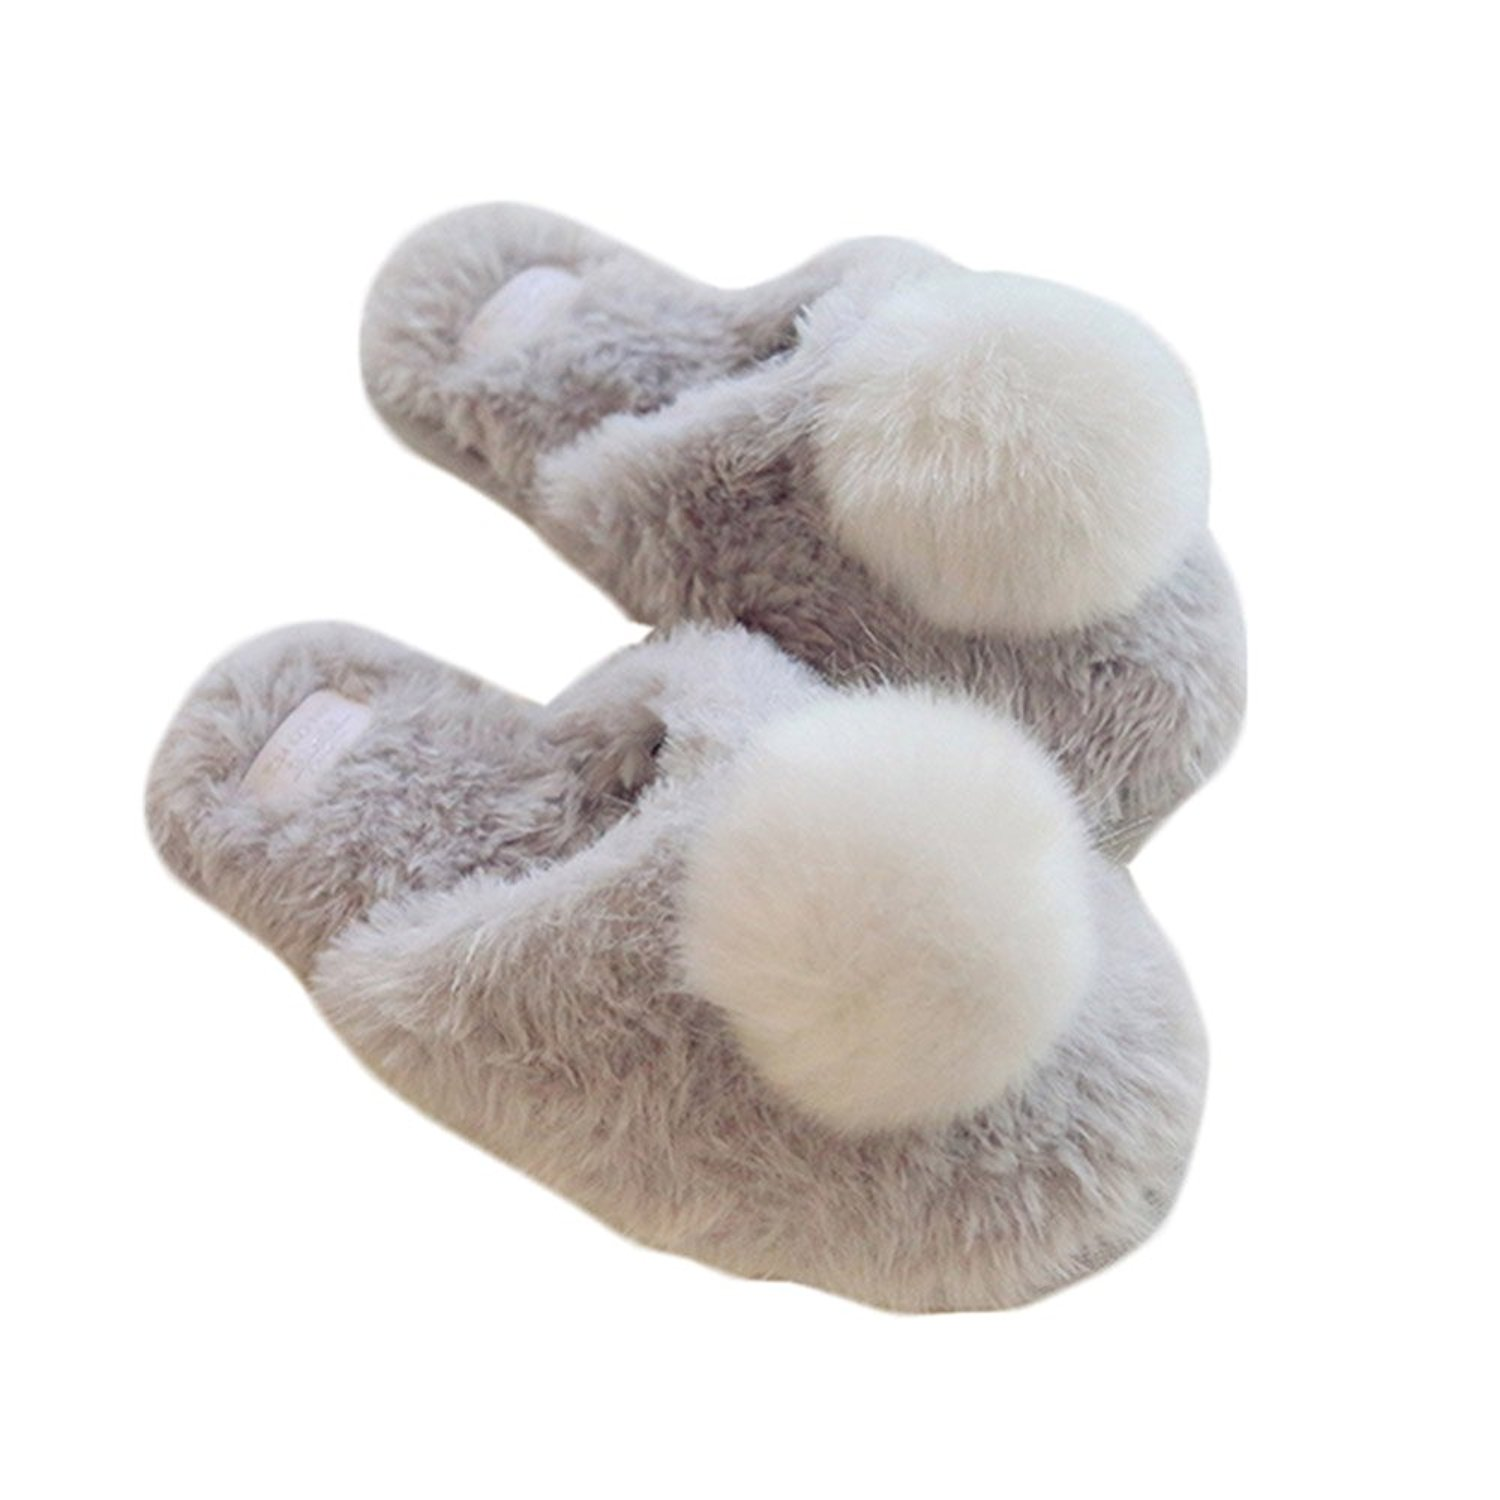 SOCOMP Women's Cute Soft Plush Furry Fur Ball Warm Cozy Winter Slippers Home Slipper Indoor Shoes New Year Gift(Gray)